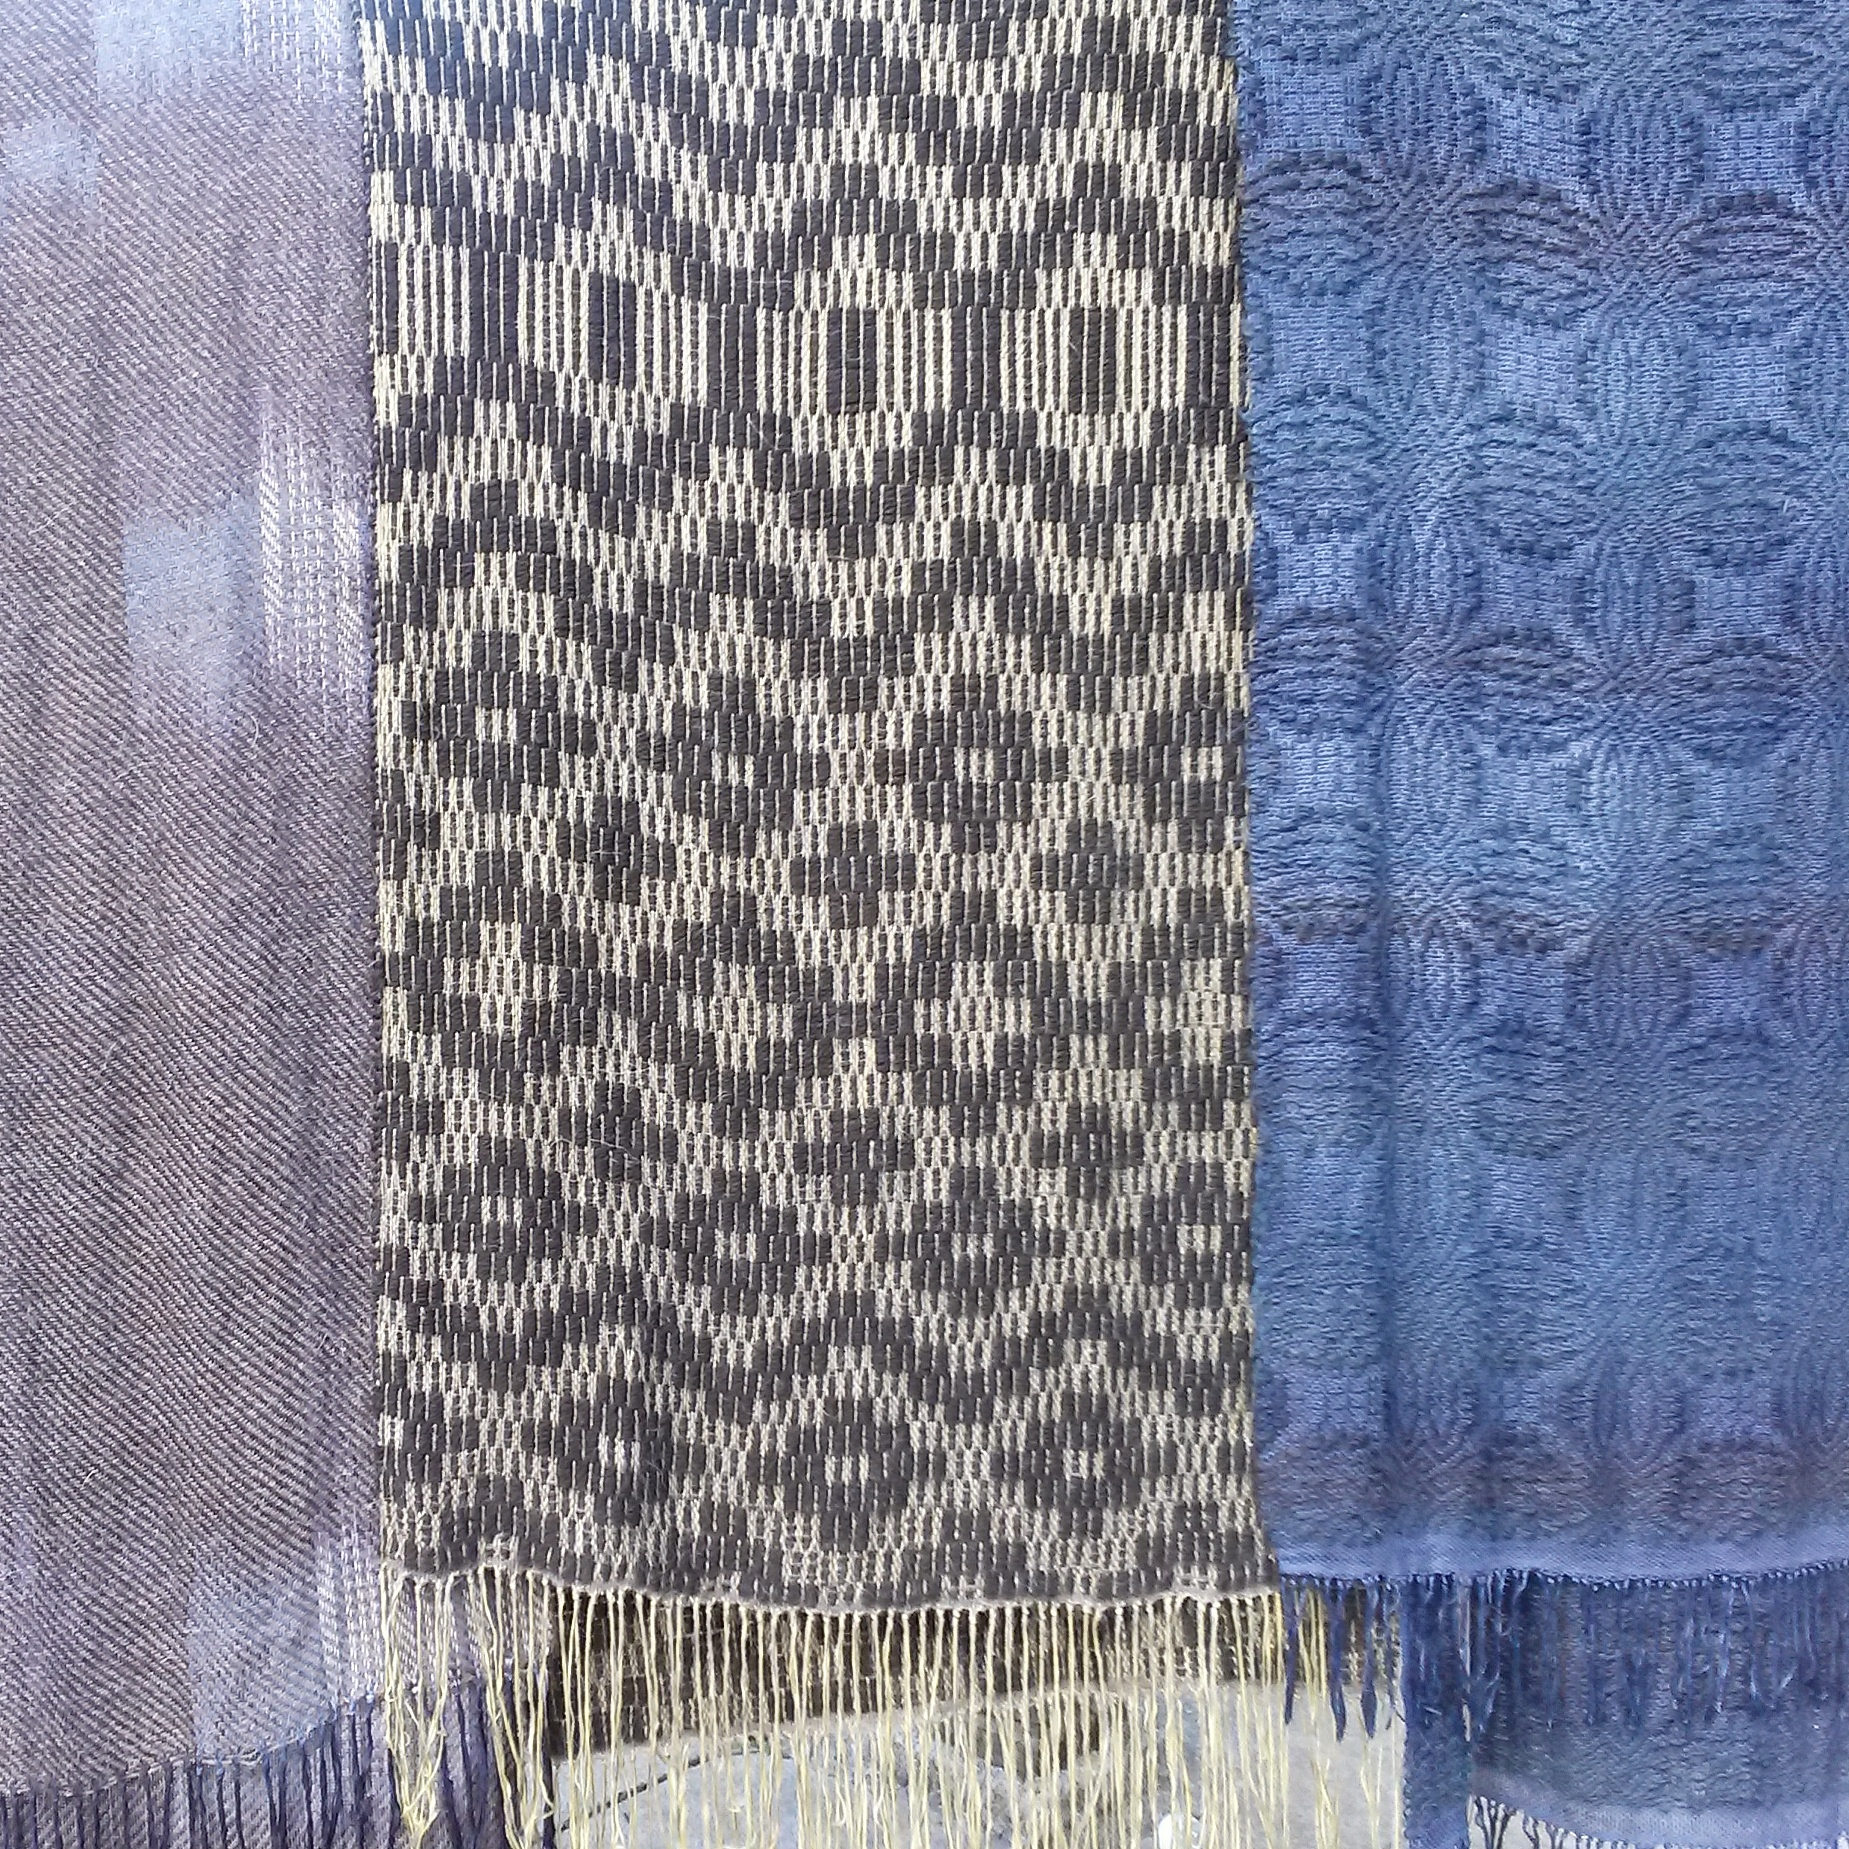 Hand dyed, handwoven cotton and wool